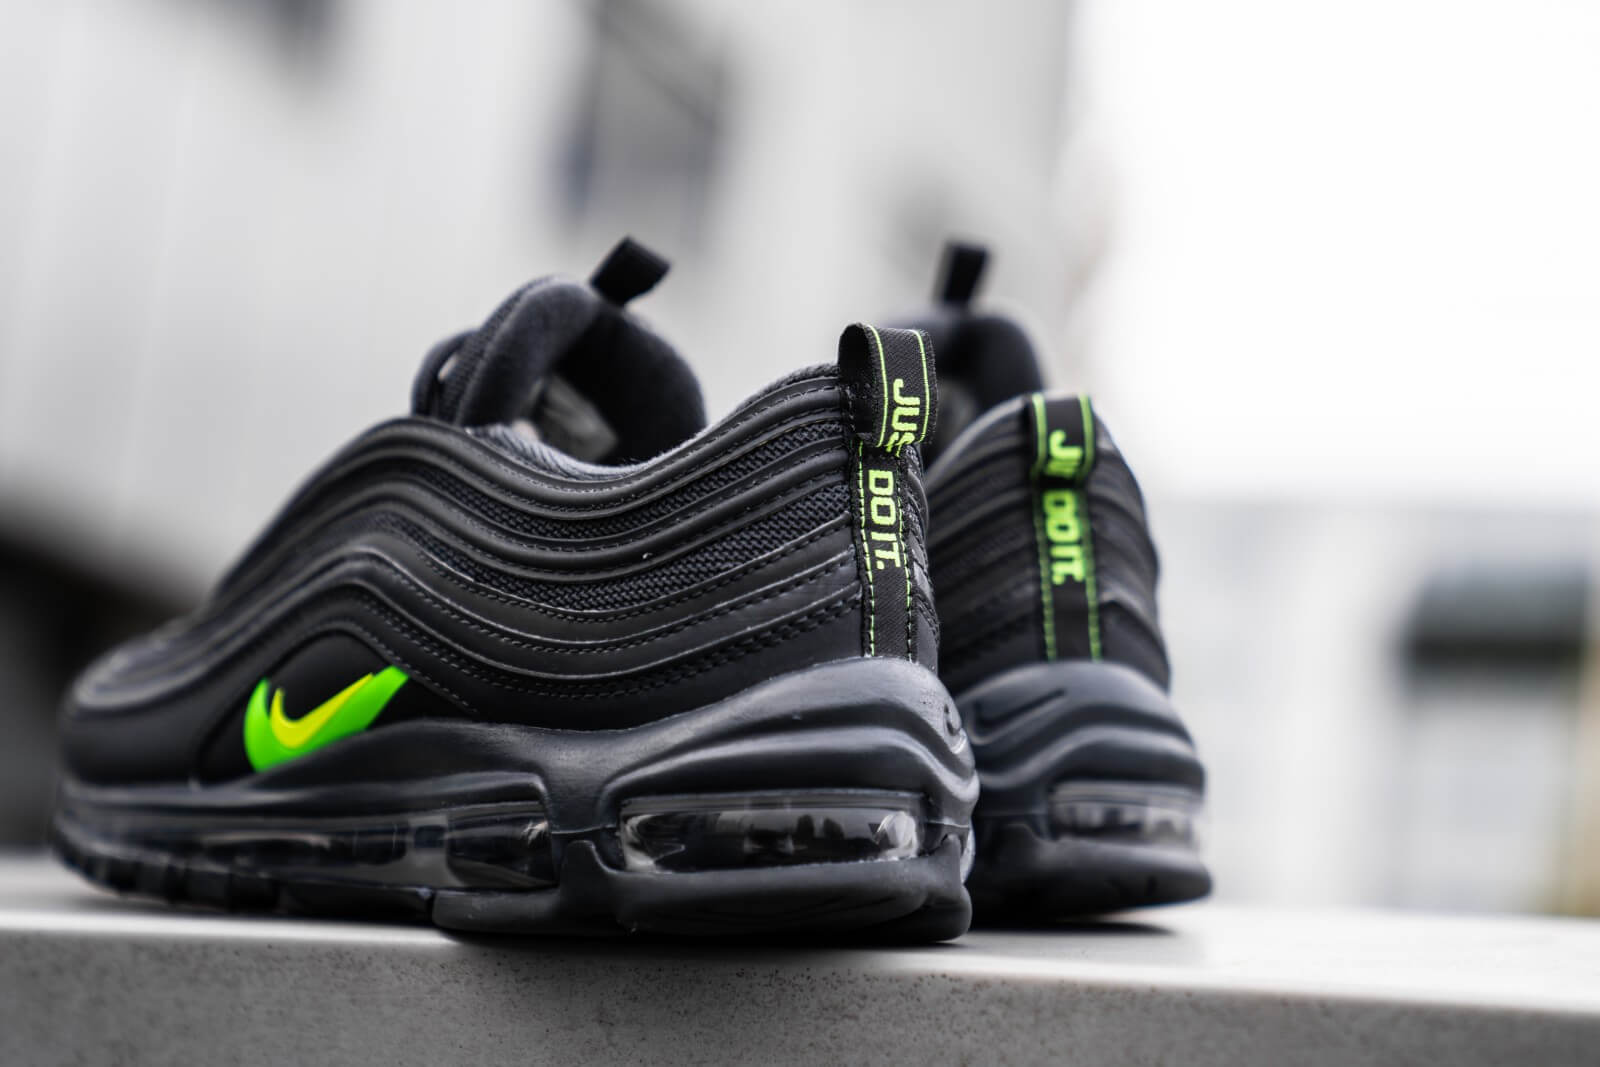 Nike Air Max 97 Anthracite Volt Electric Green Ct2205 002